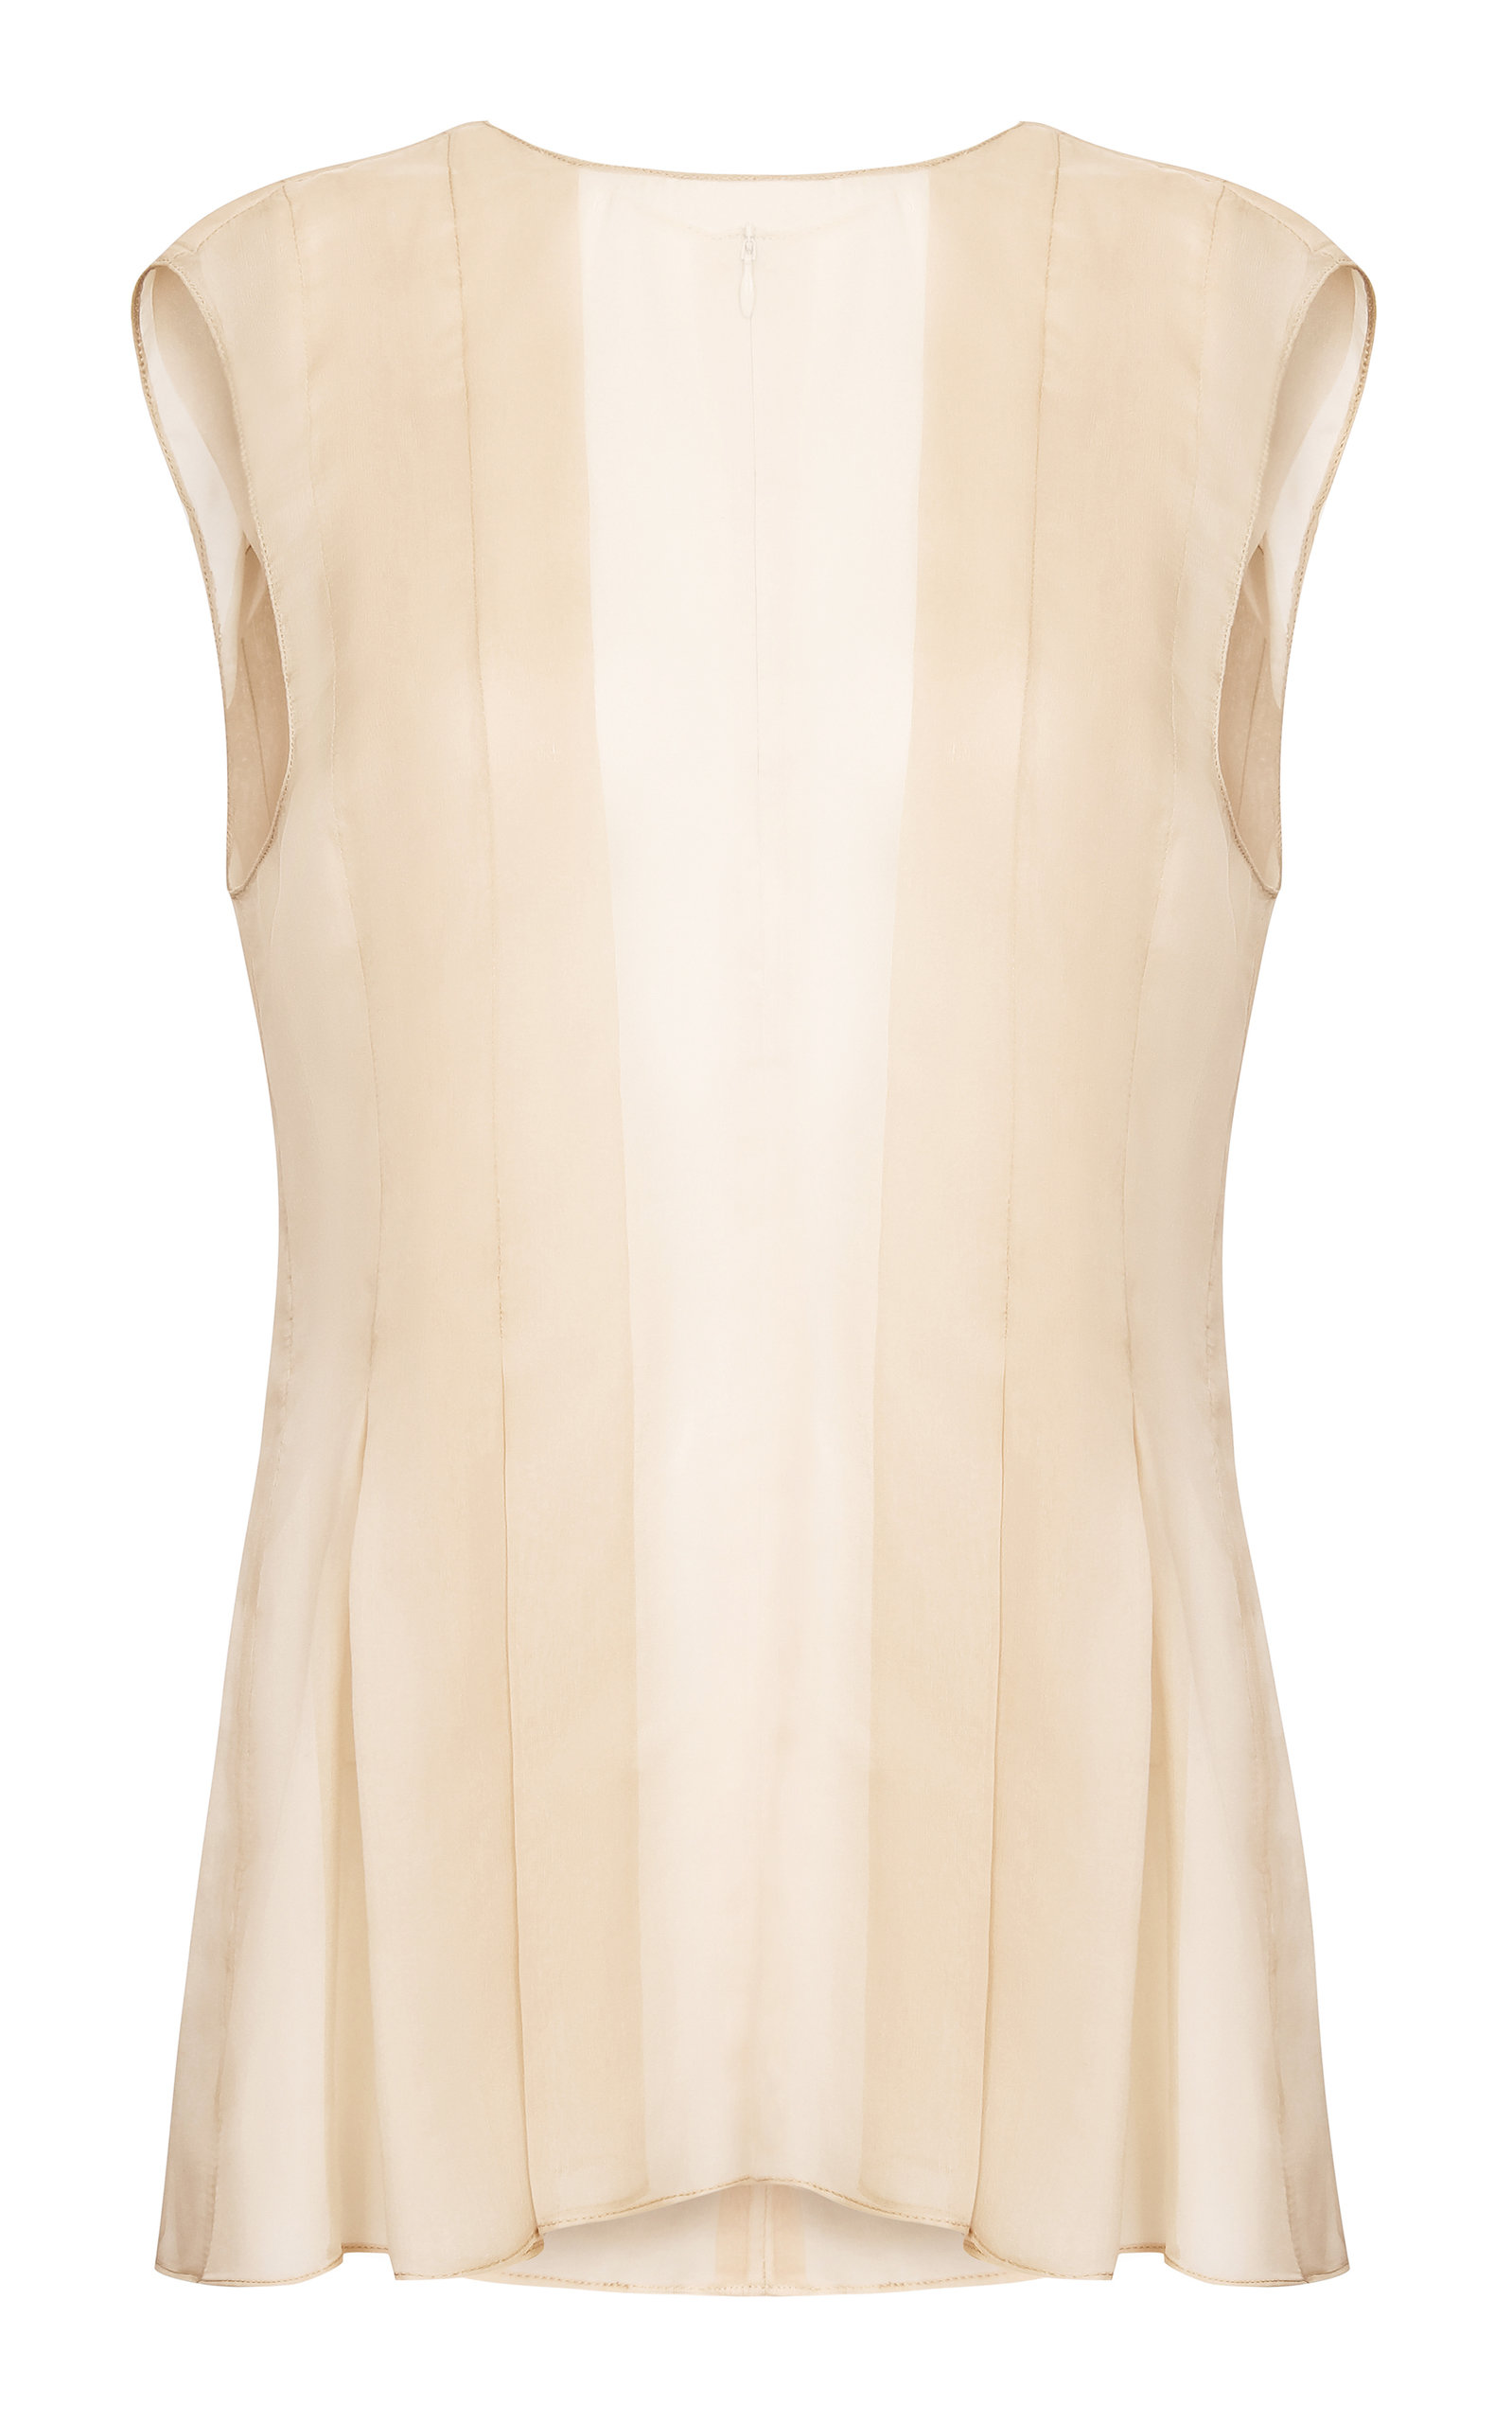 ABADIA Pleated Chiffon Top in Neutral